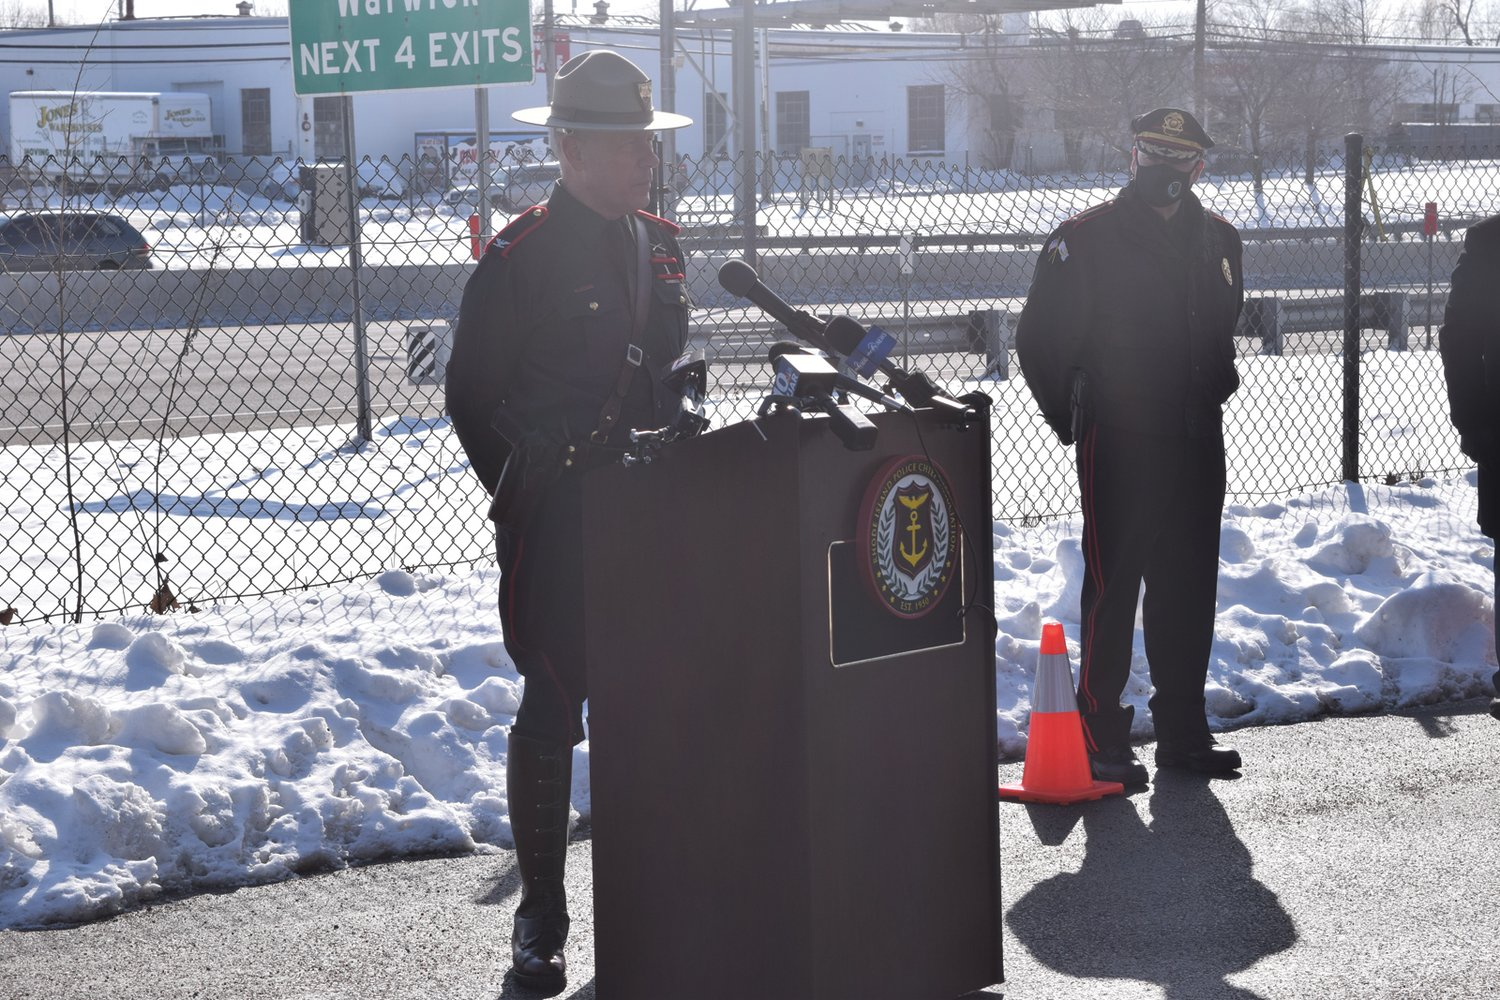 PATROLLING THE ROADS: Rhode Island State Police Superintendent Col. James Manni said he has worked with Department of Transportation Director Peter Alviti to form the traffic safety unit dedicated to catching impaired drivers.